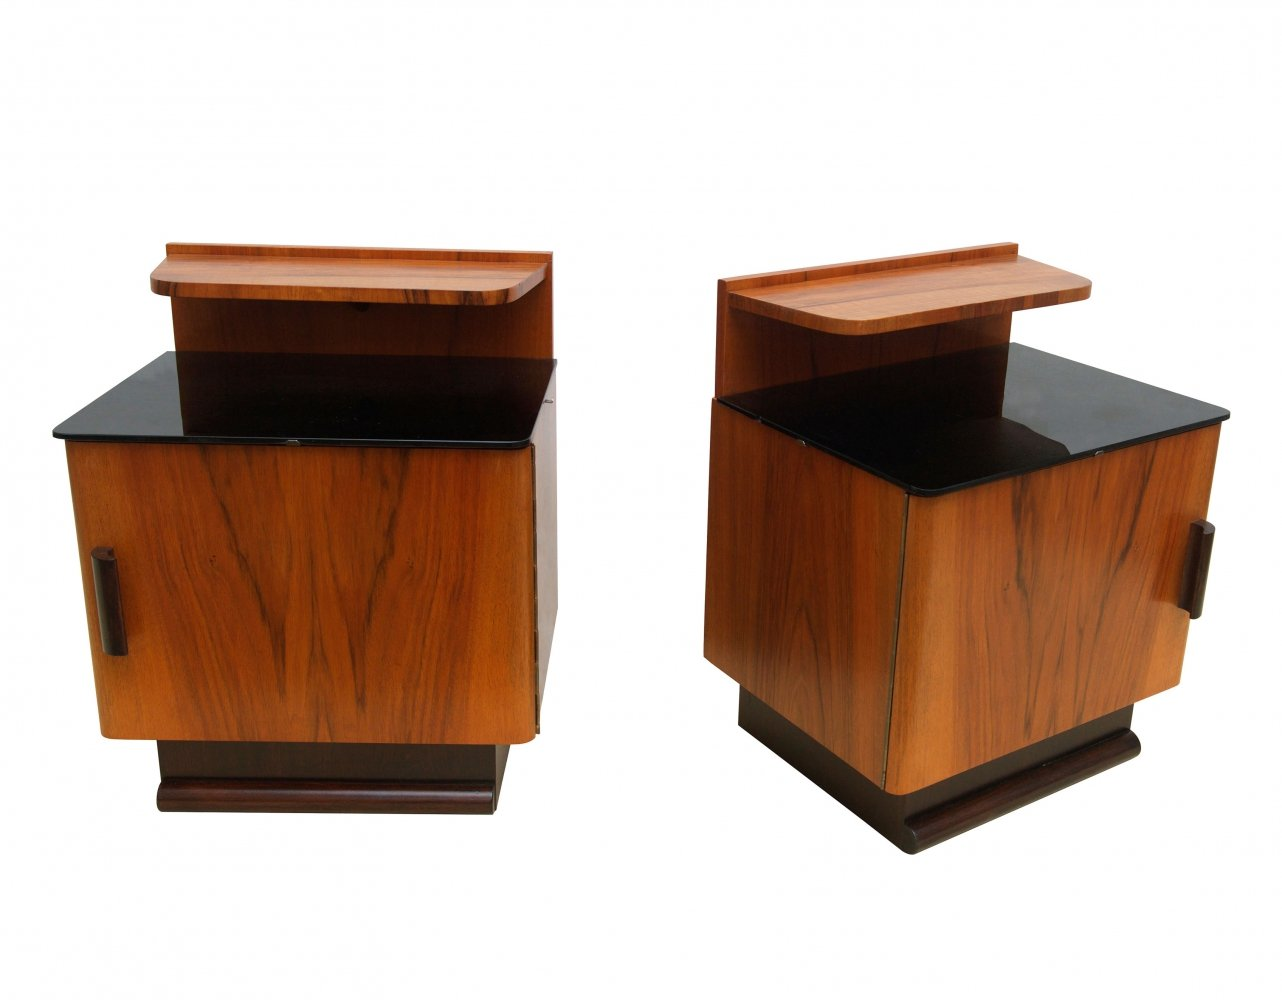 Pair of Mid Century Bedside Tables, 1950s